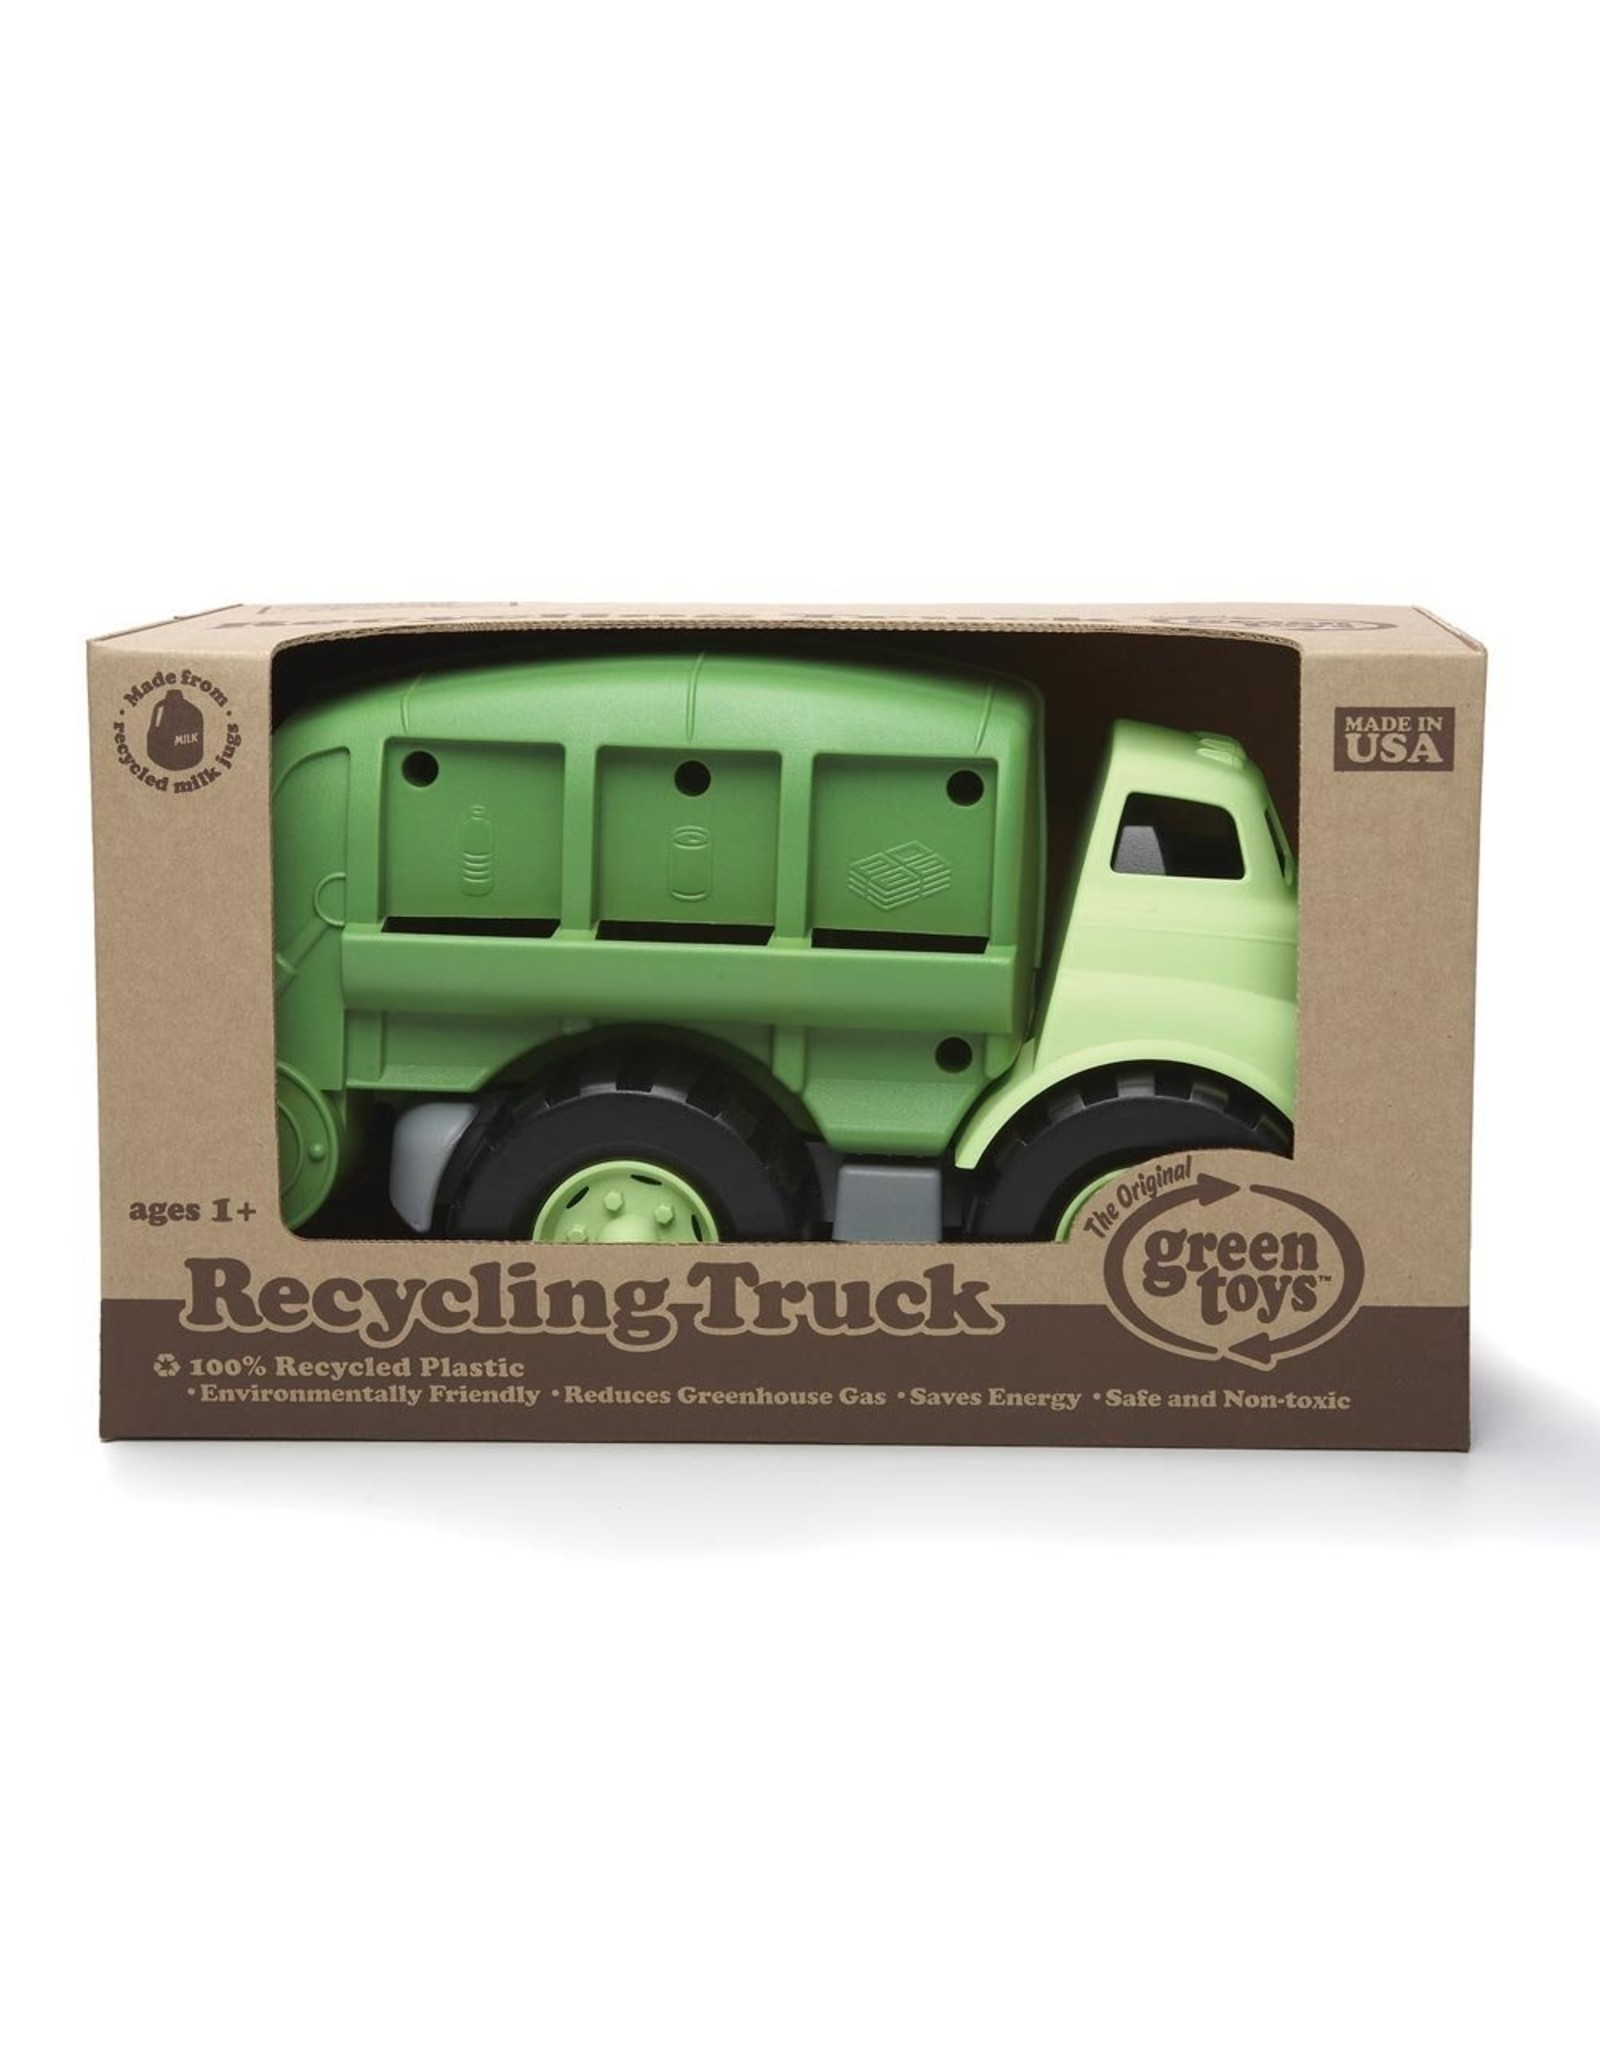 Green Toys Recycling Truck in Green Color - BPA Free, Phthalates Free Play Toy